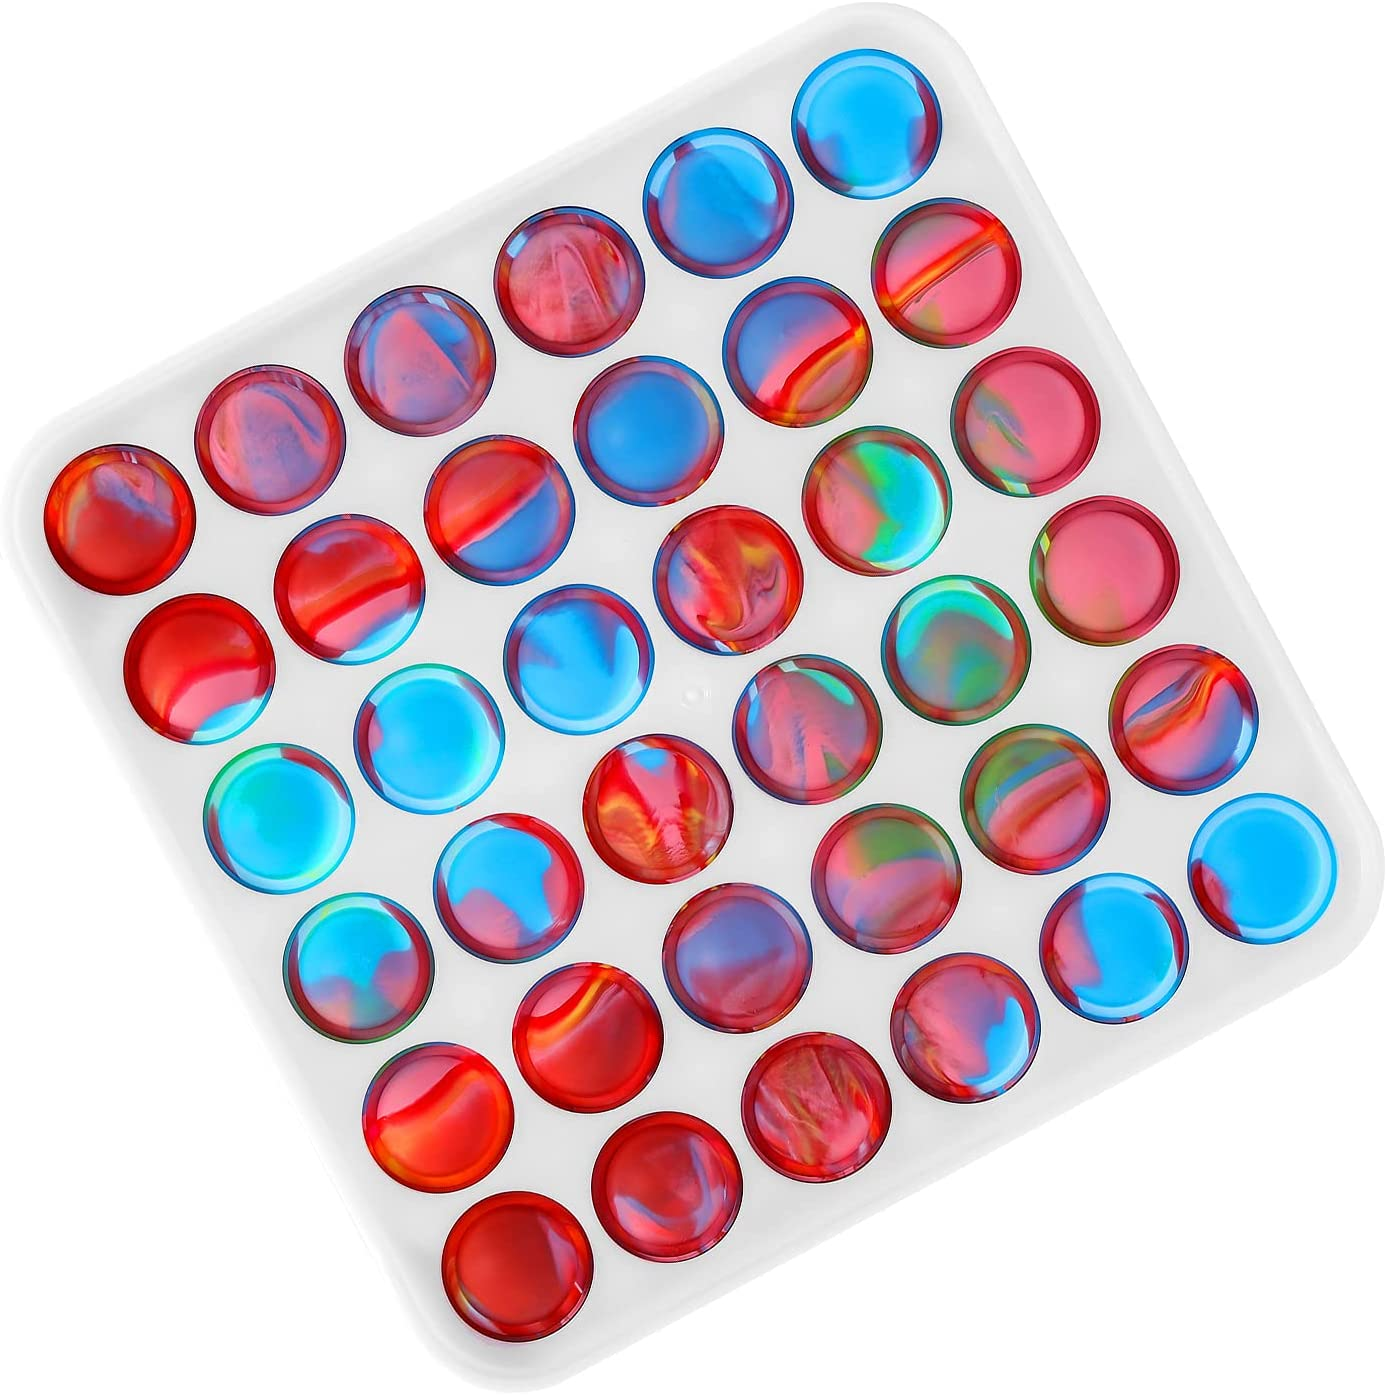 Push Pop Fidget Max 52% OFF Limited time for free shipping Toys Bubble Sensory Stress Novelty Anxiety